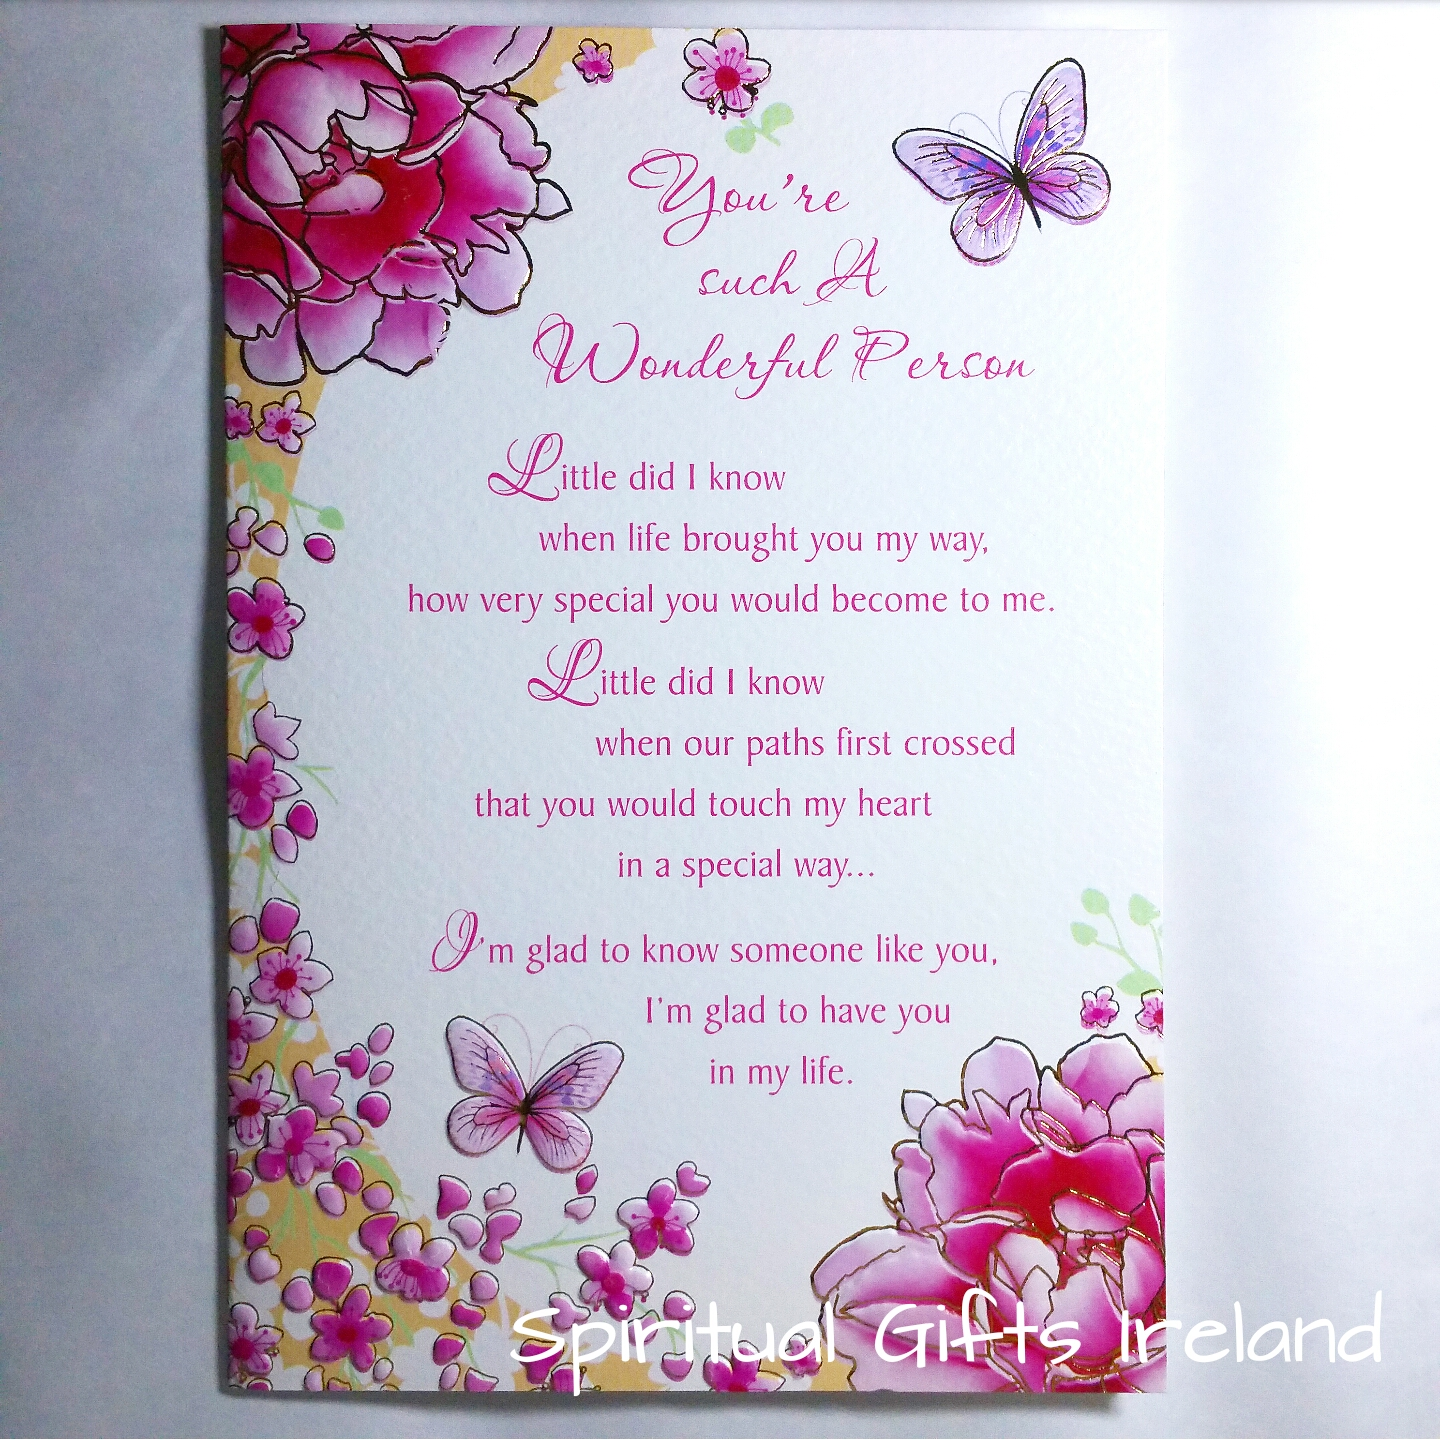 Wonderful Person Inspirational Meaningful Greeting Card - Spiritual ...